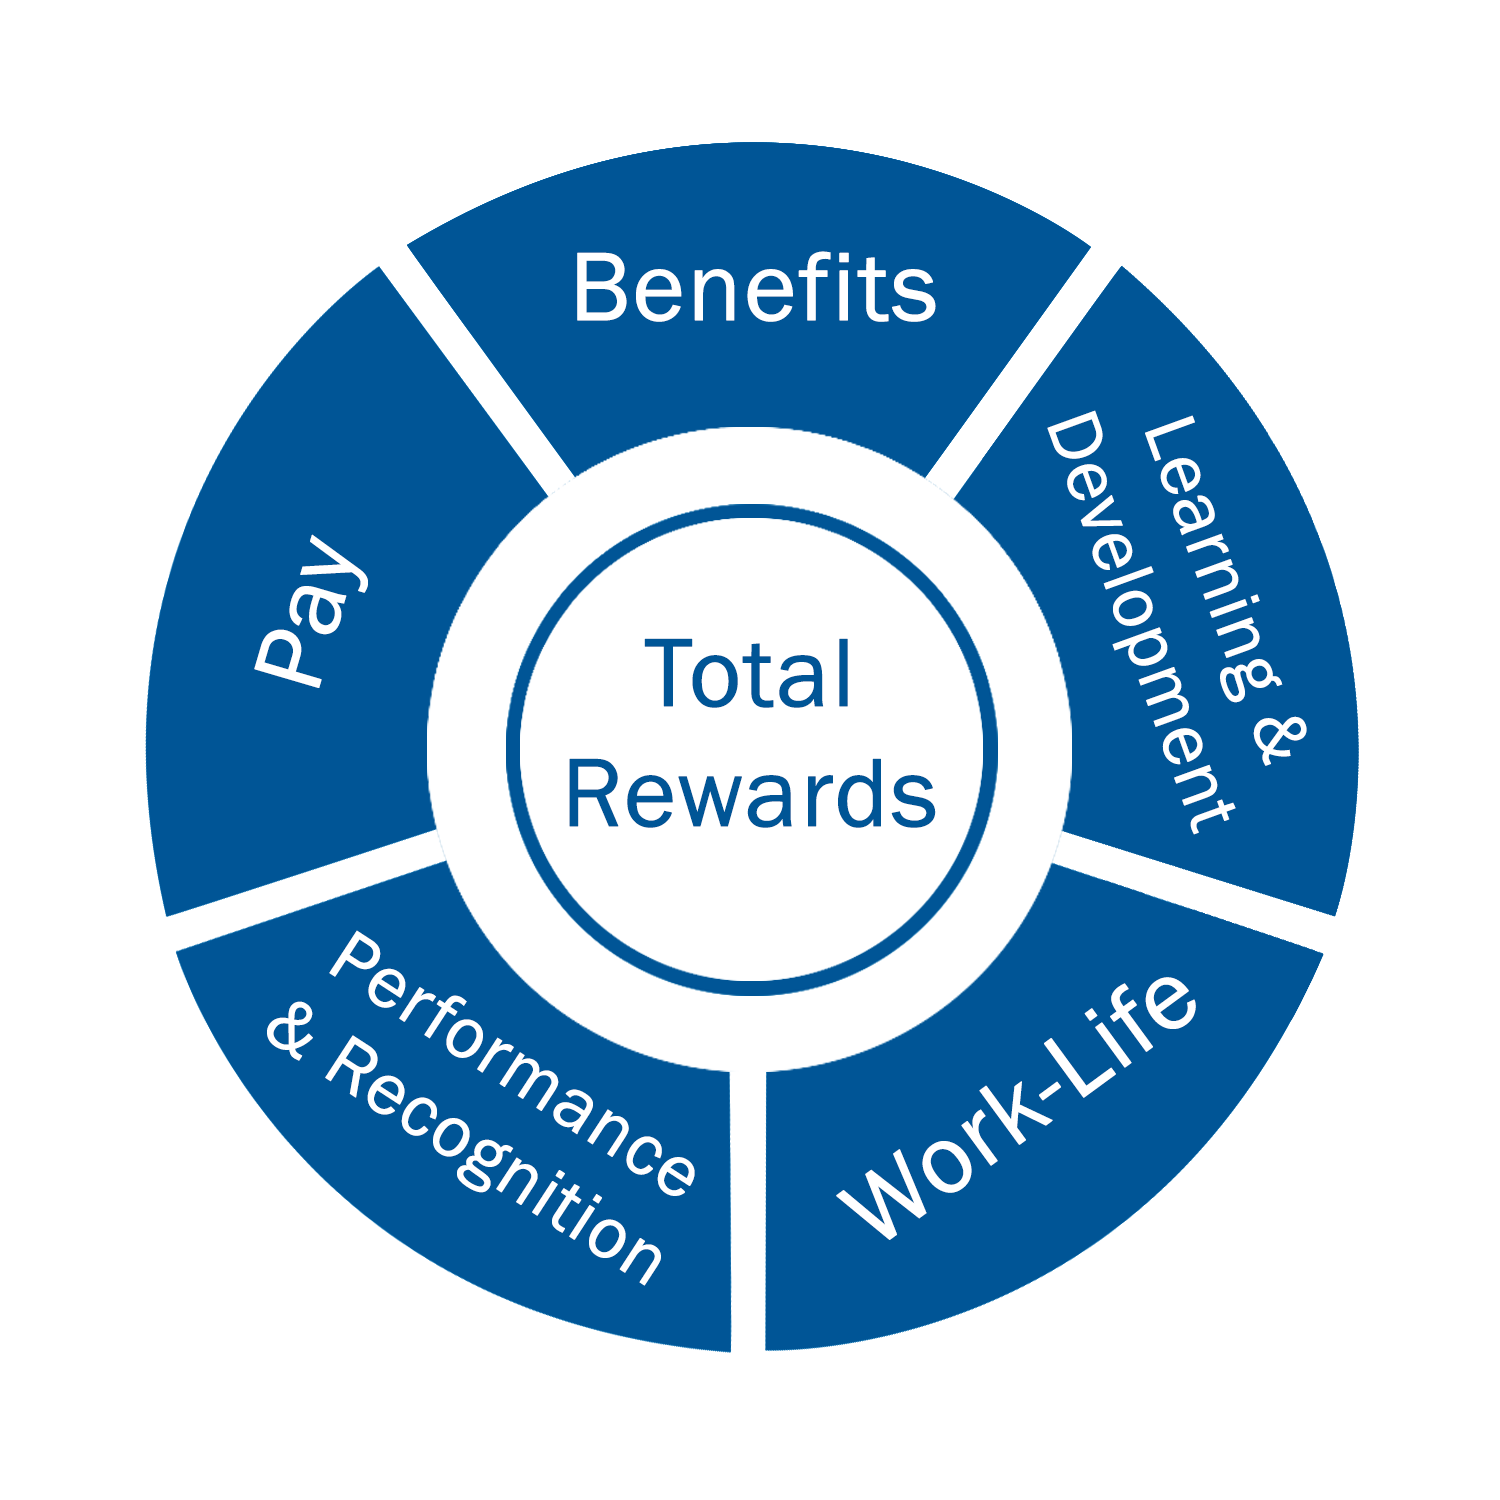 Total Rewards: Benefits, Pay, Work/Life, Learning and Development,